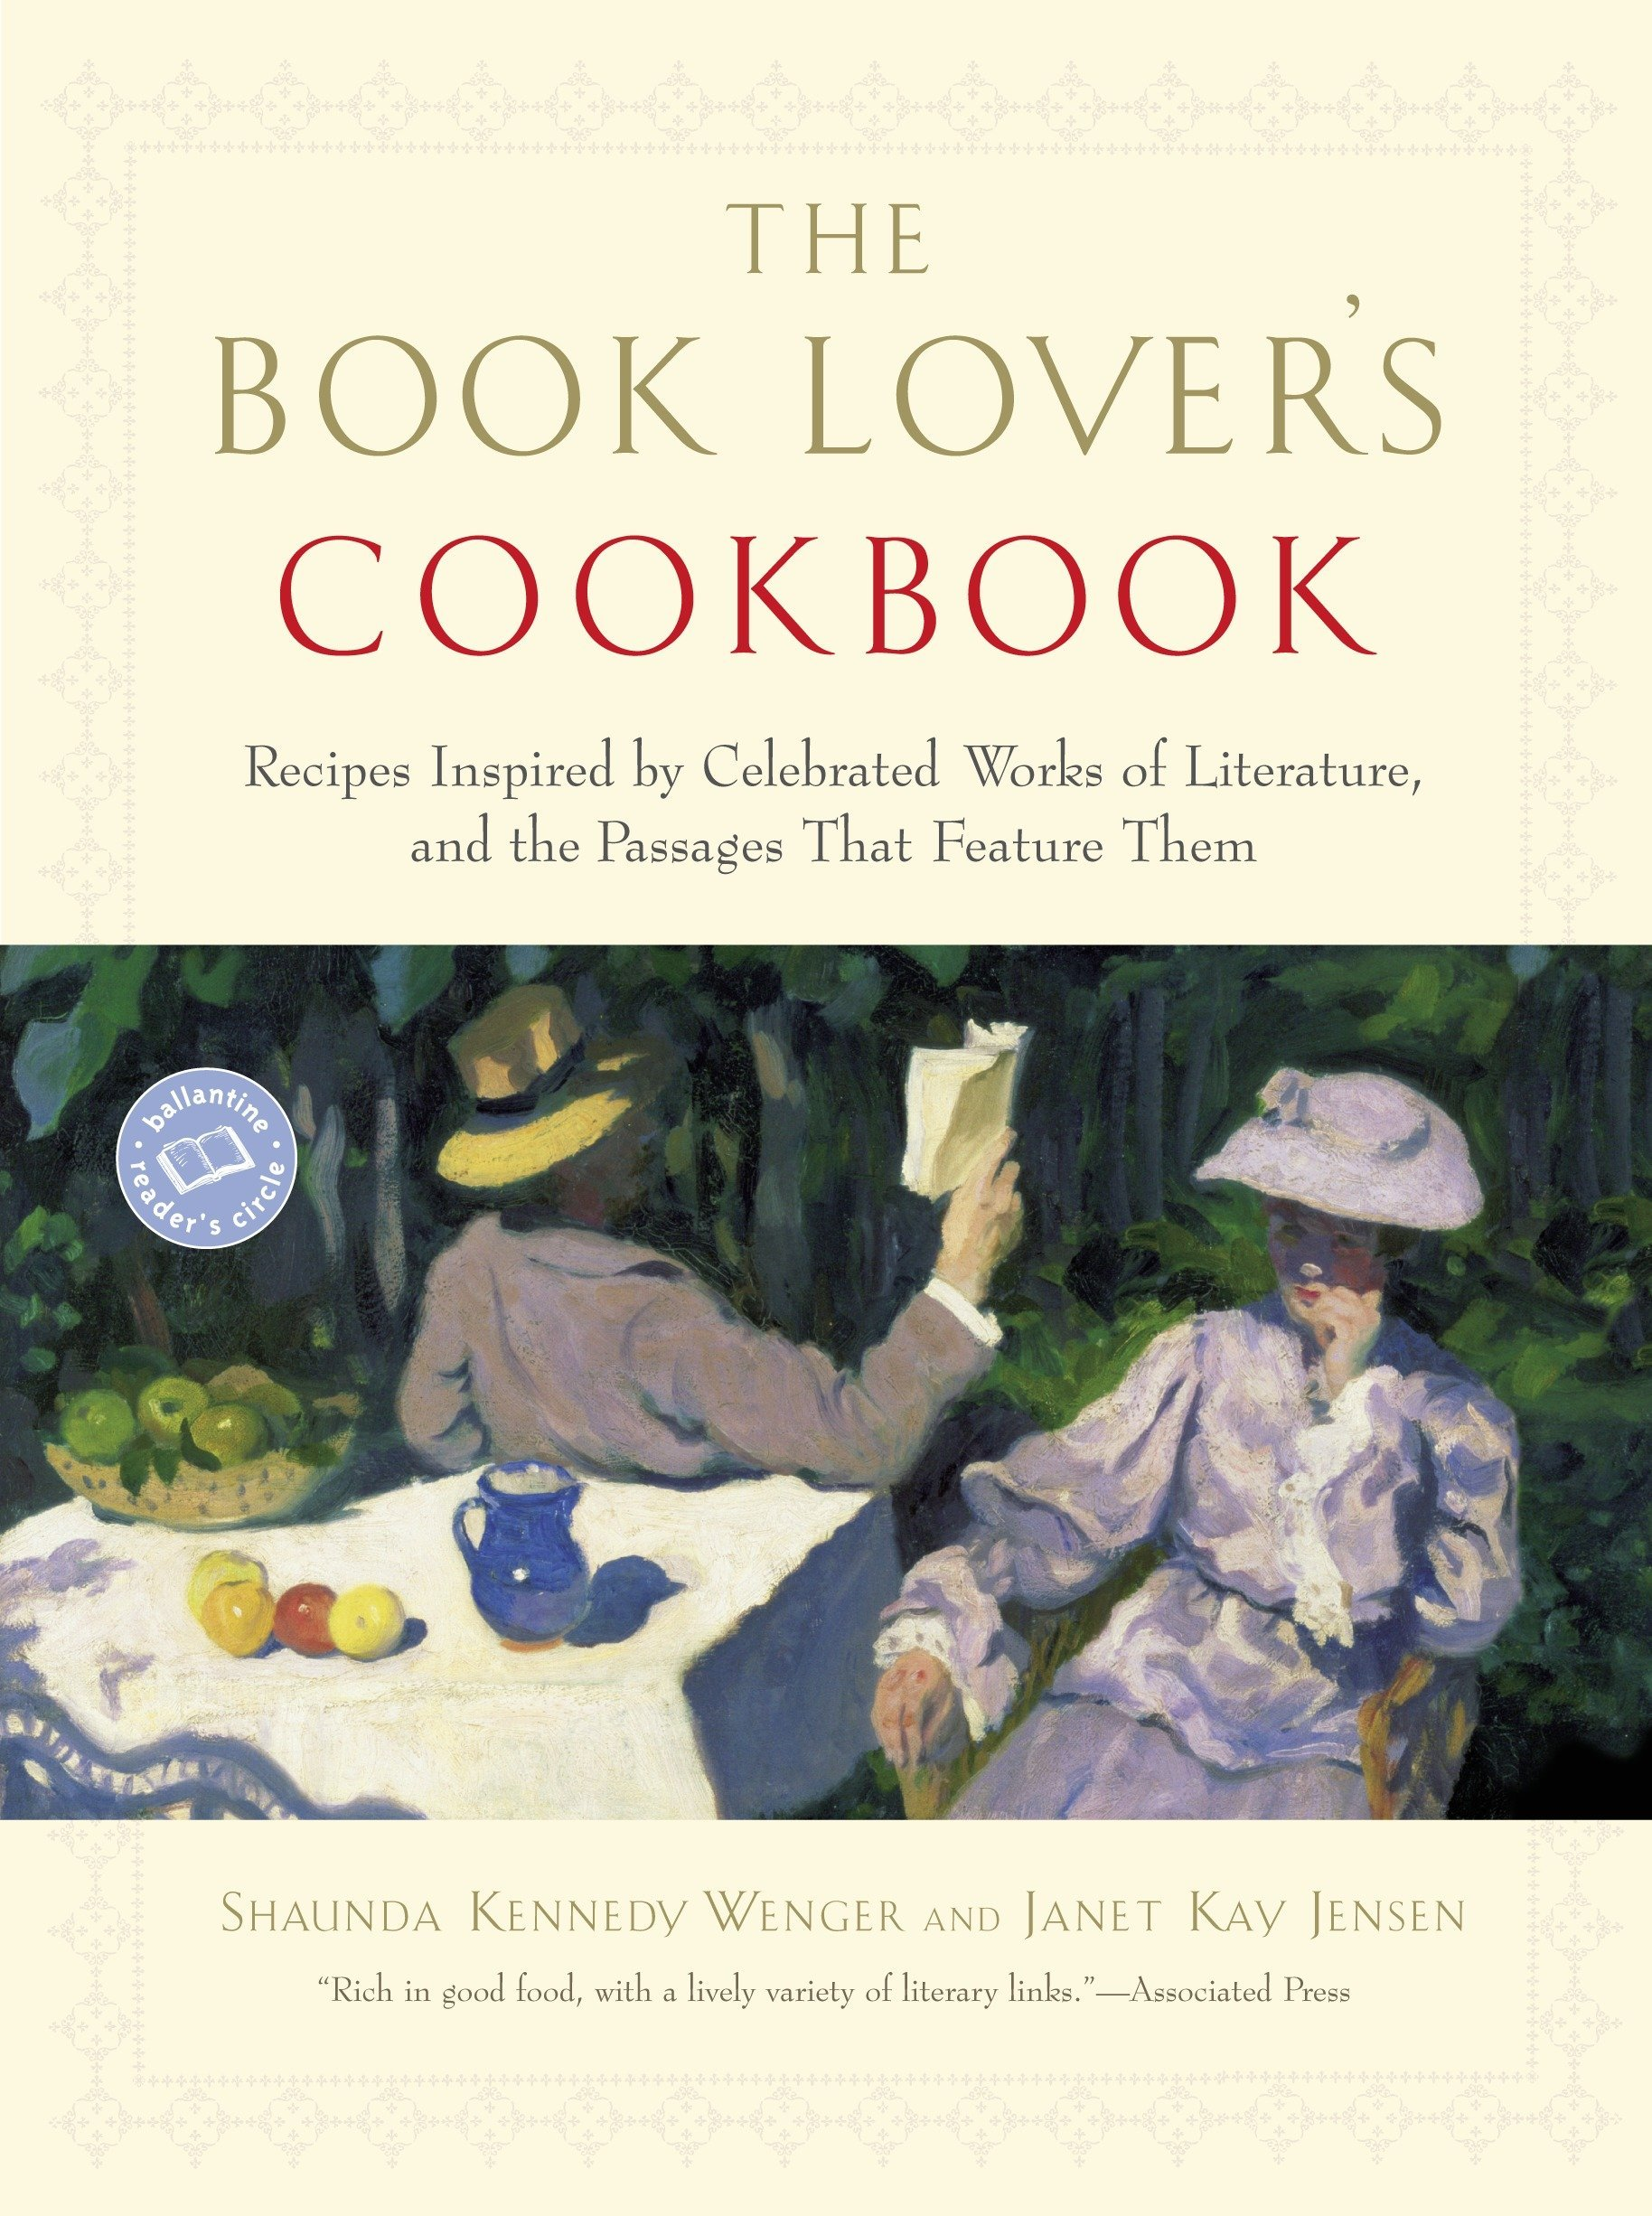 The Book Lover's Cookbook: Recipes Inspired by Celebrated Works of Literature